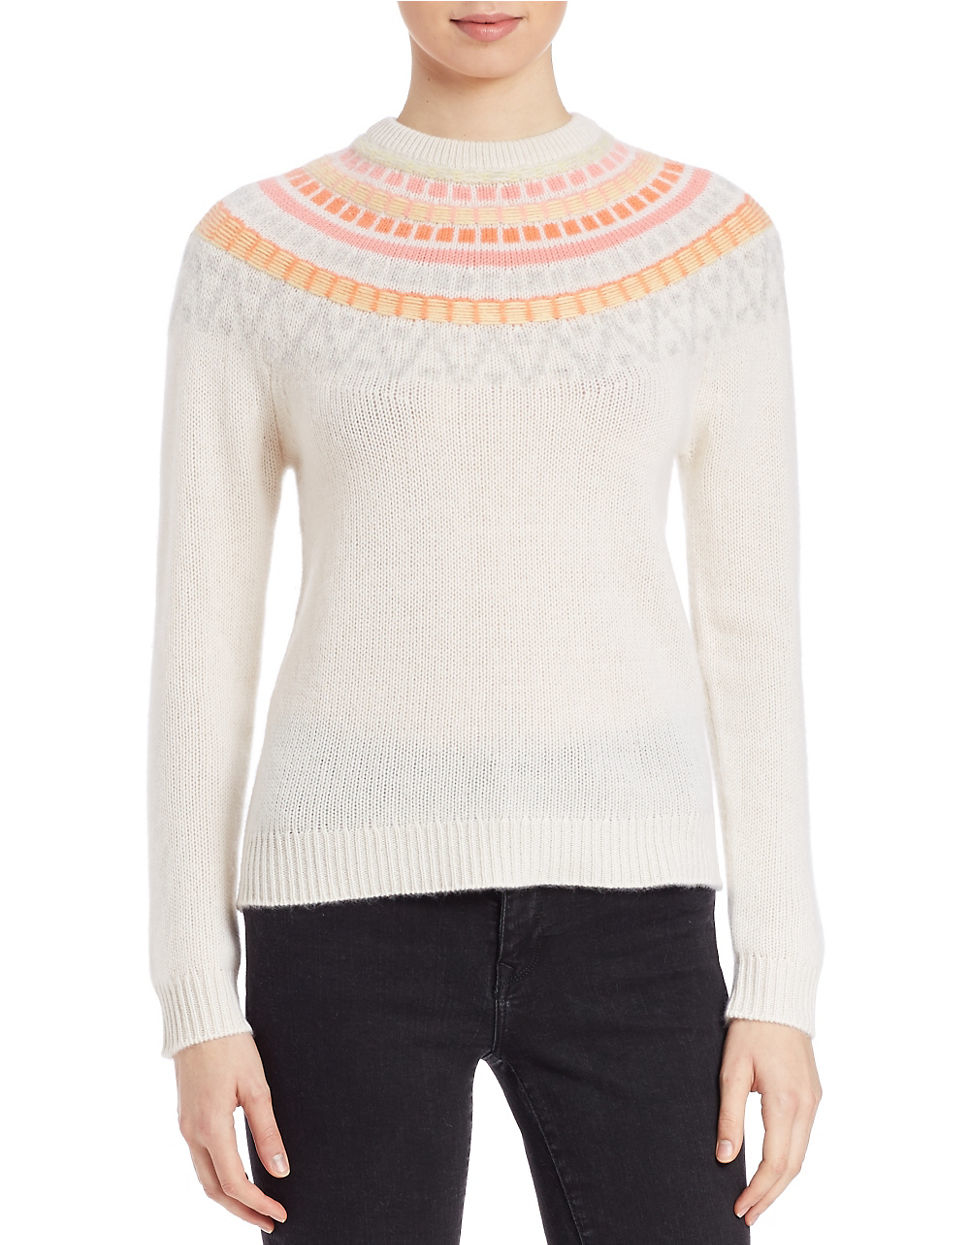 Lord & taylor Patterned Cashmere Sweater | Lyst